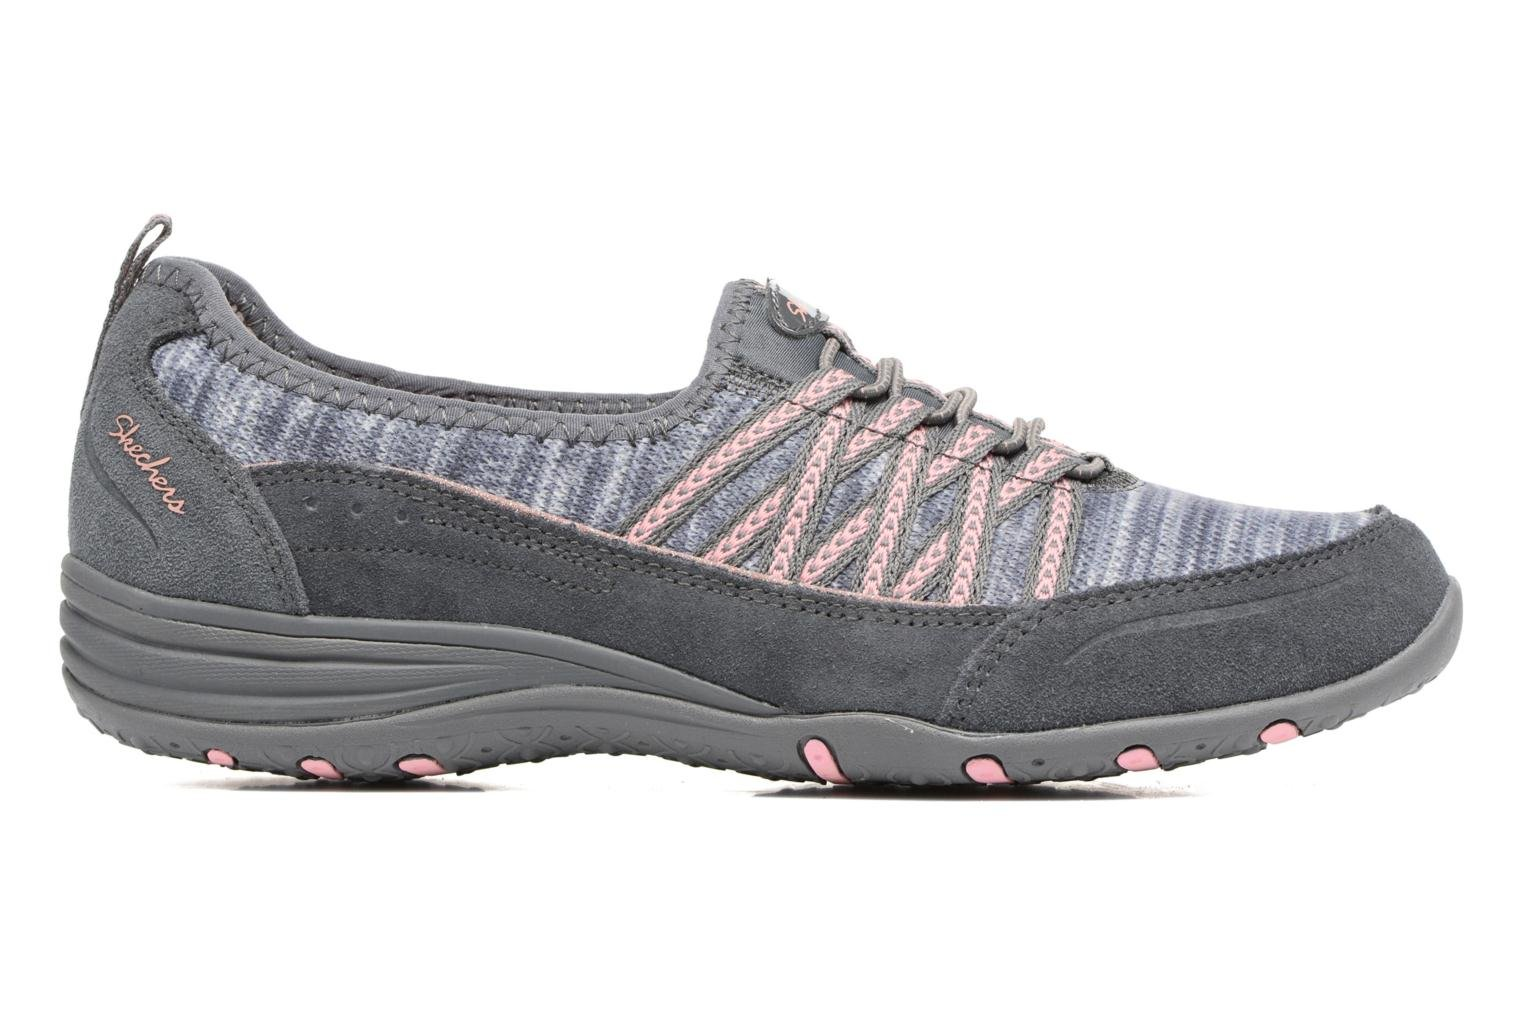 Baskets Skechers Unity Eternal Bliss Gris vue derrière